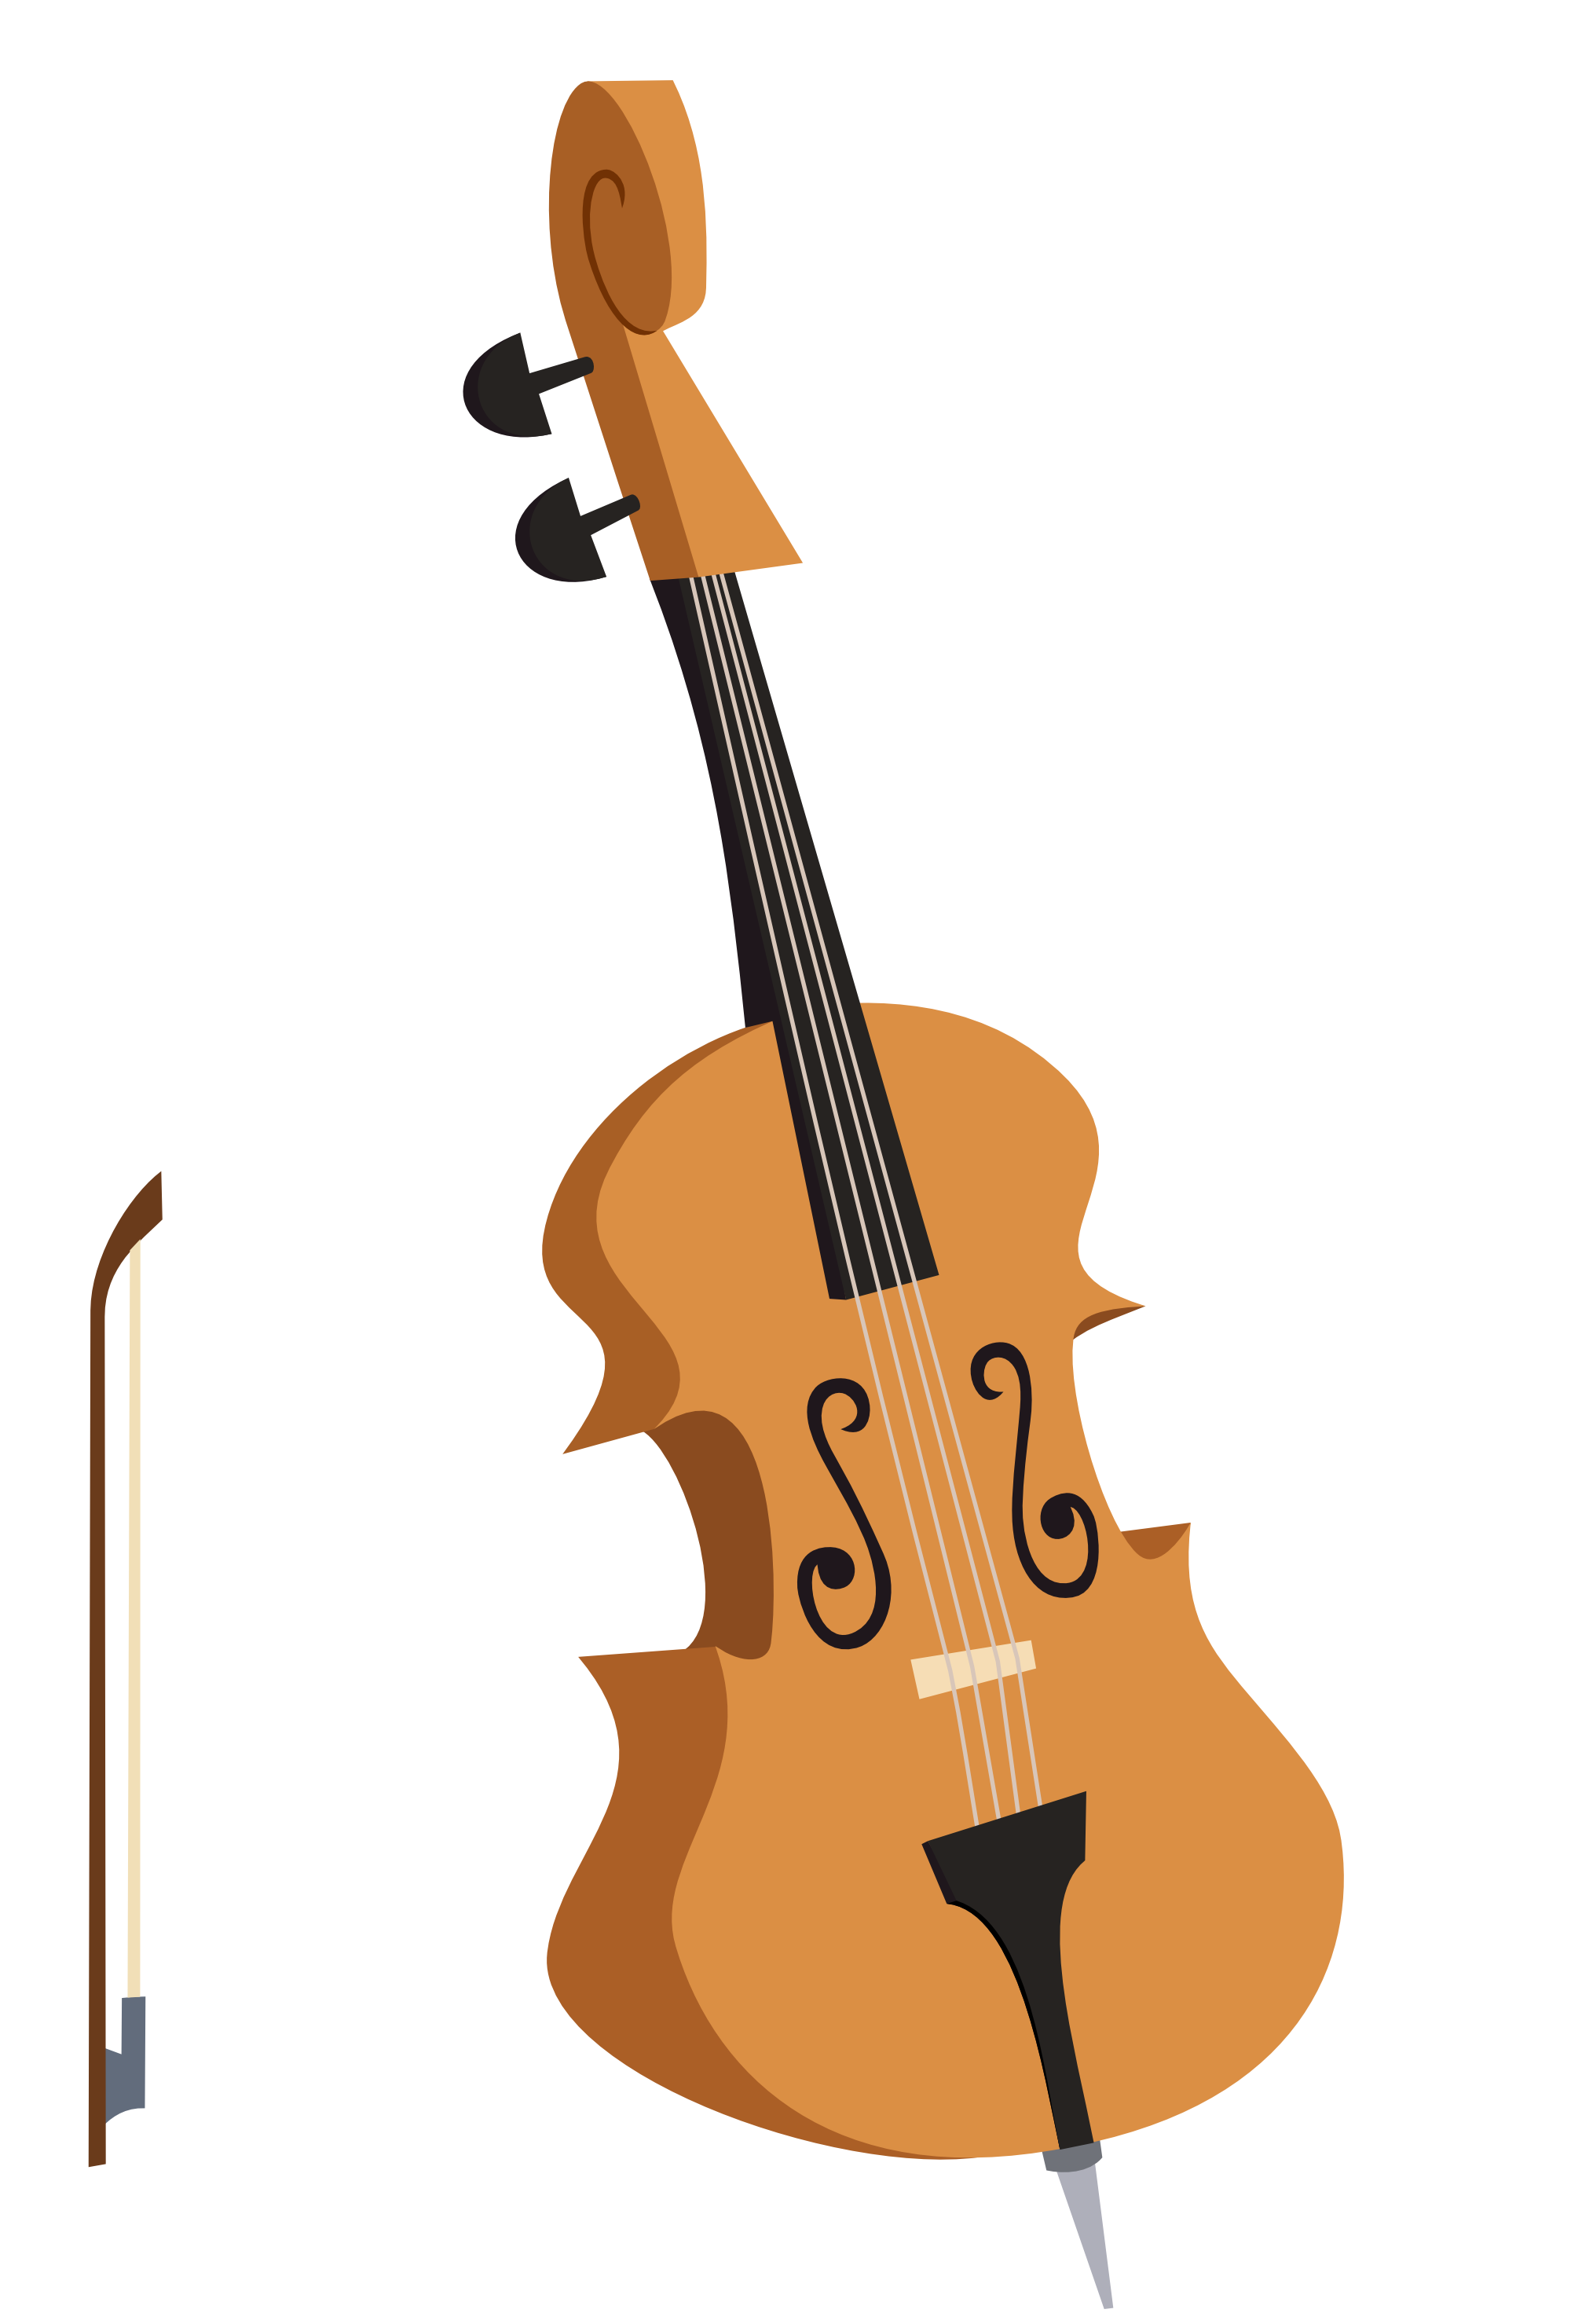 Charmander vector behind. Collection of free cellos